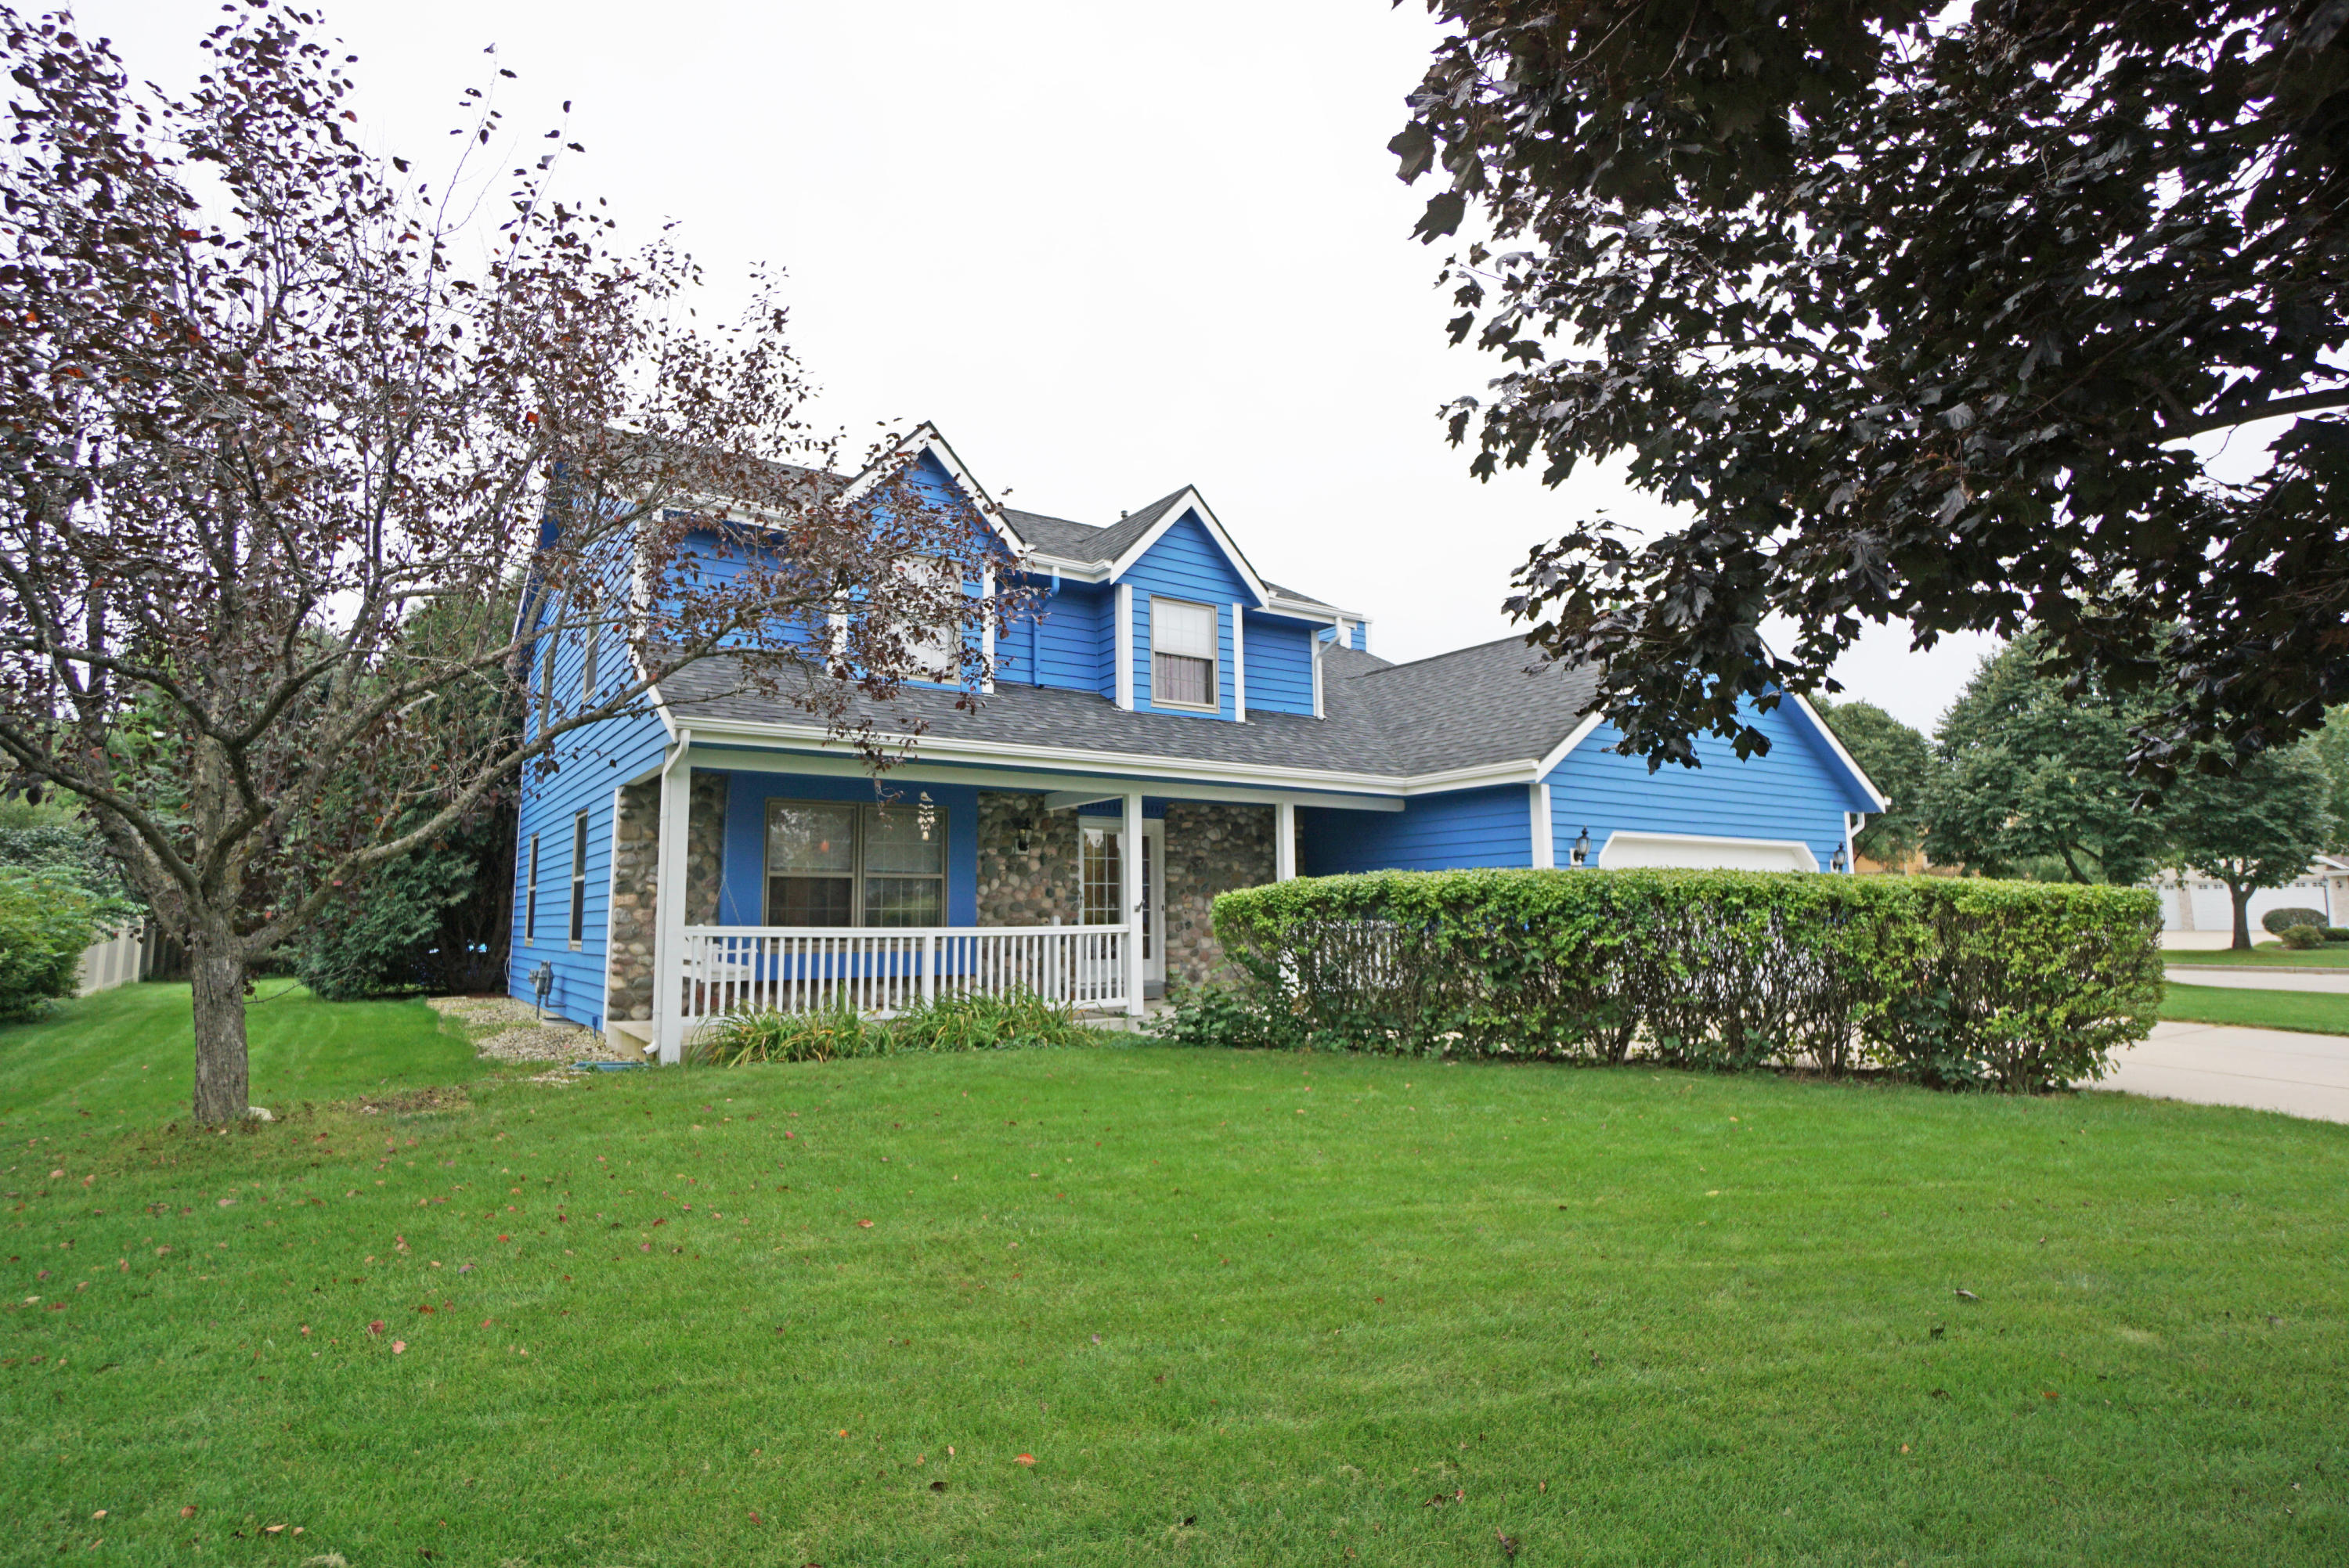 672 Briarcliff Ct, Hartland, Wisconsin 53029, 4 Bedrooms Bedrooms, 8 Rooms Rooms,2 BathroomsBathrooms,Single-Family,For Sale,Briarcliff Ct,1607429